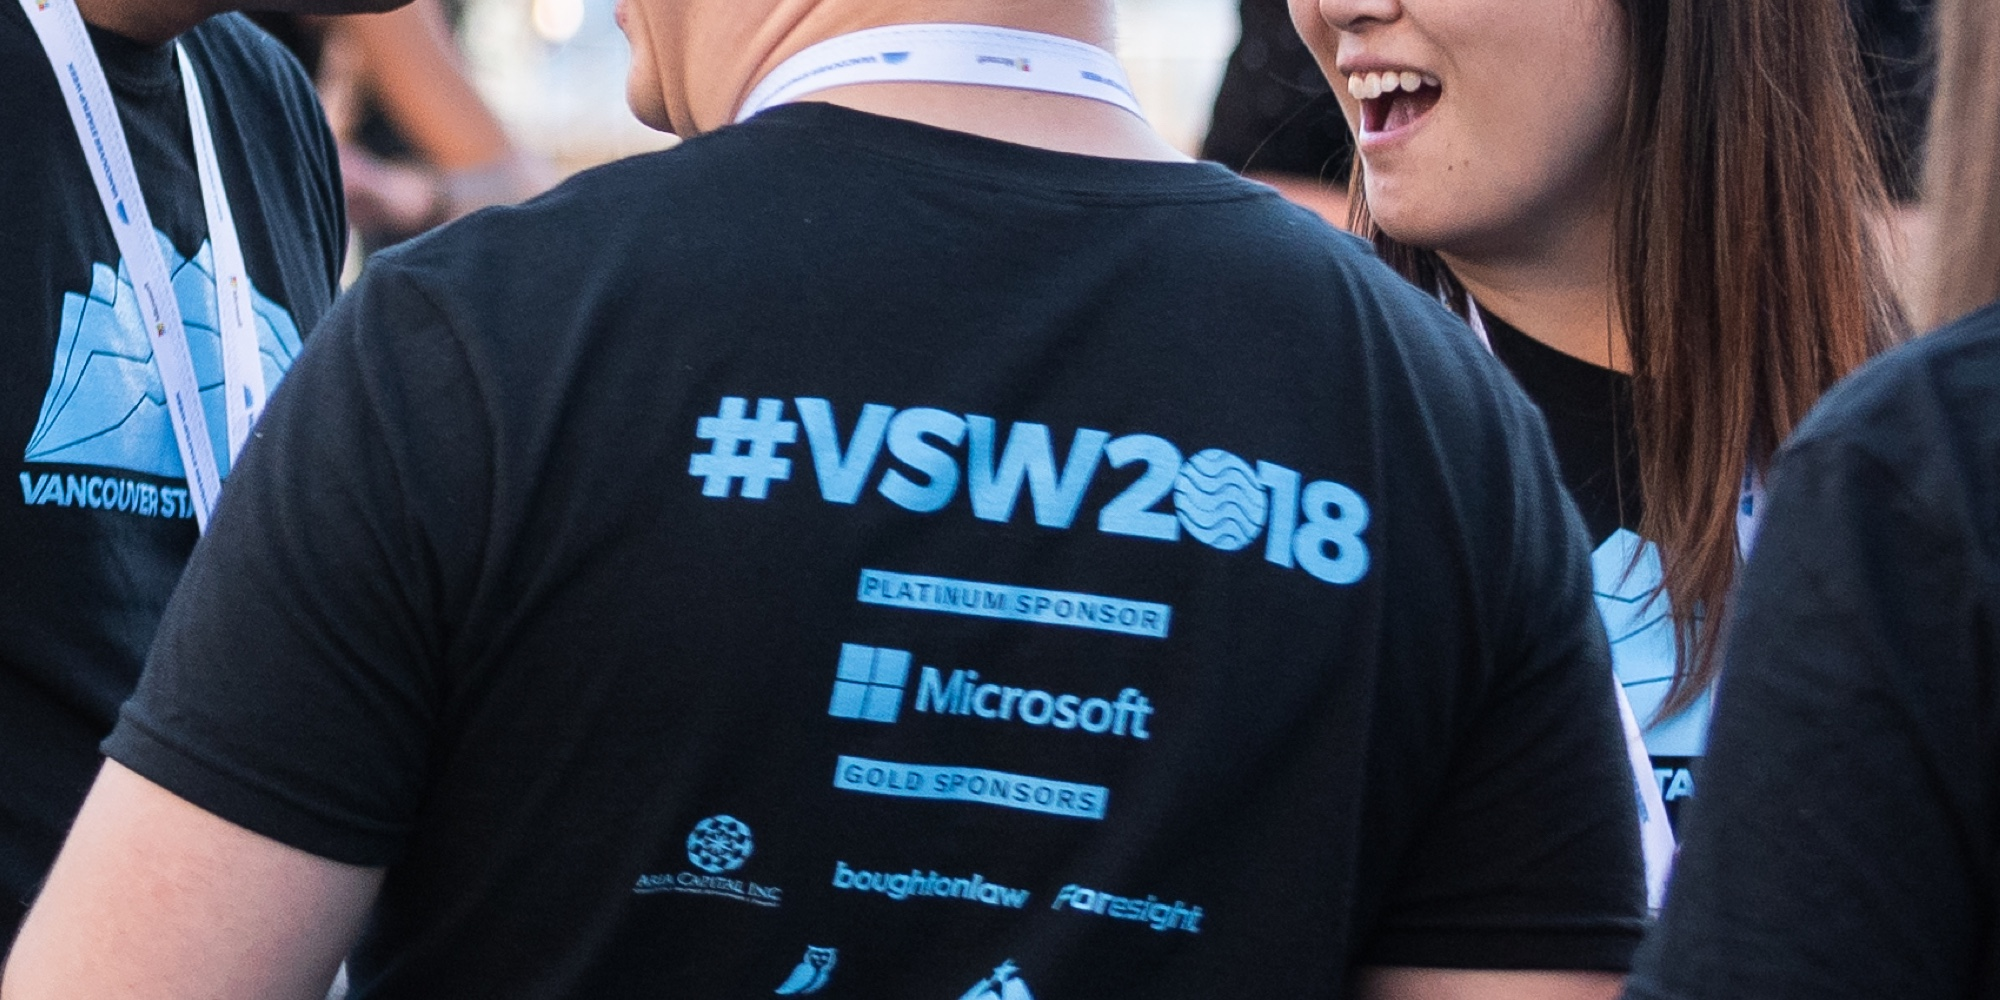 Why an event like Vancouver Startup Week is so important for our tech community